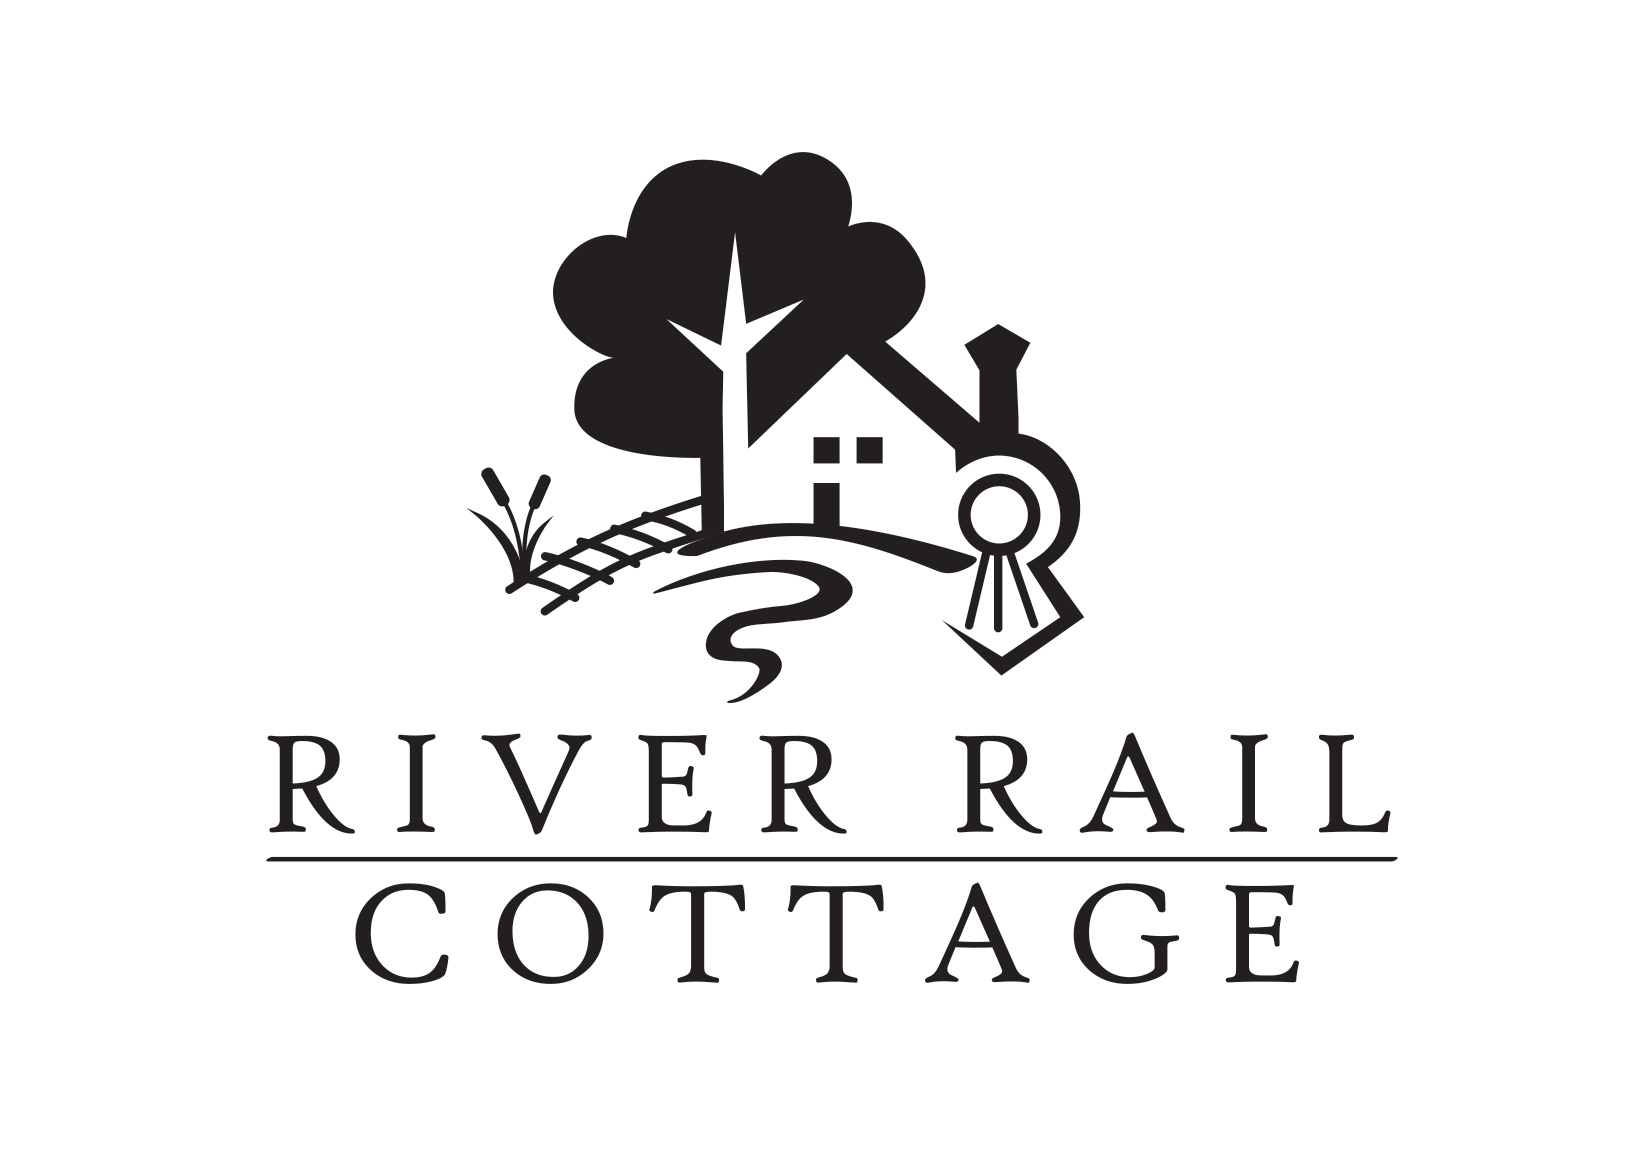 RiverRailCottage_Logo_Final_04162018